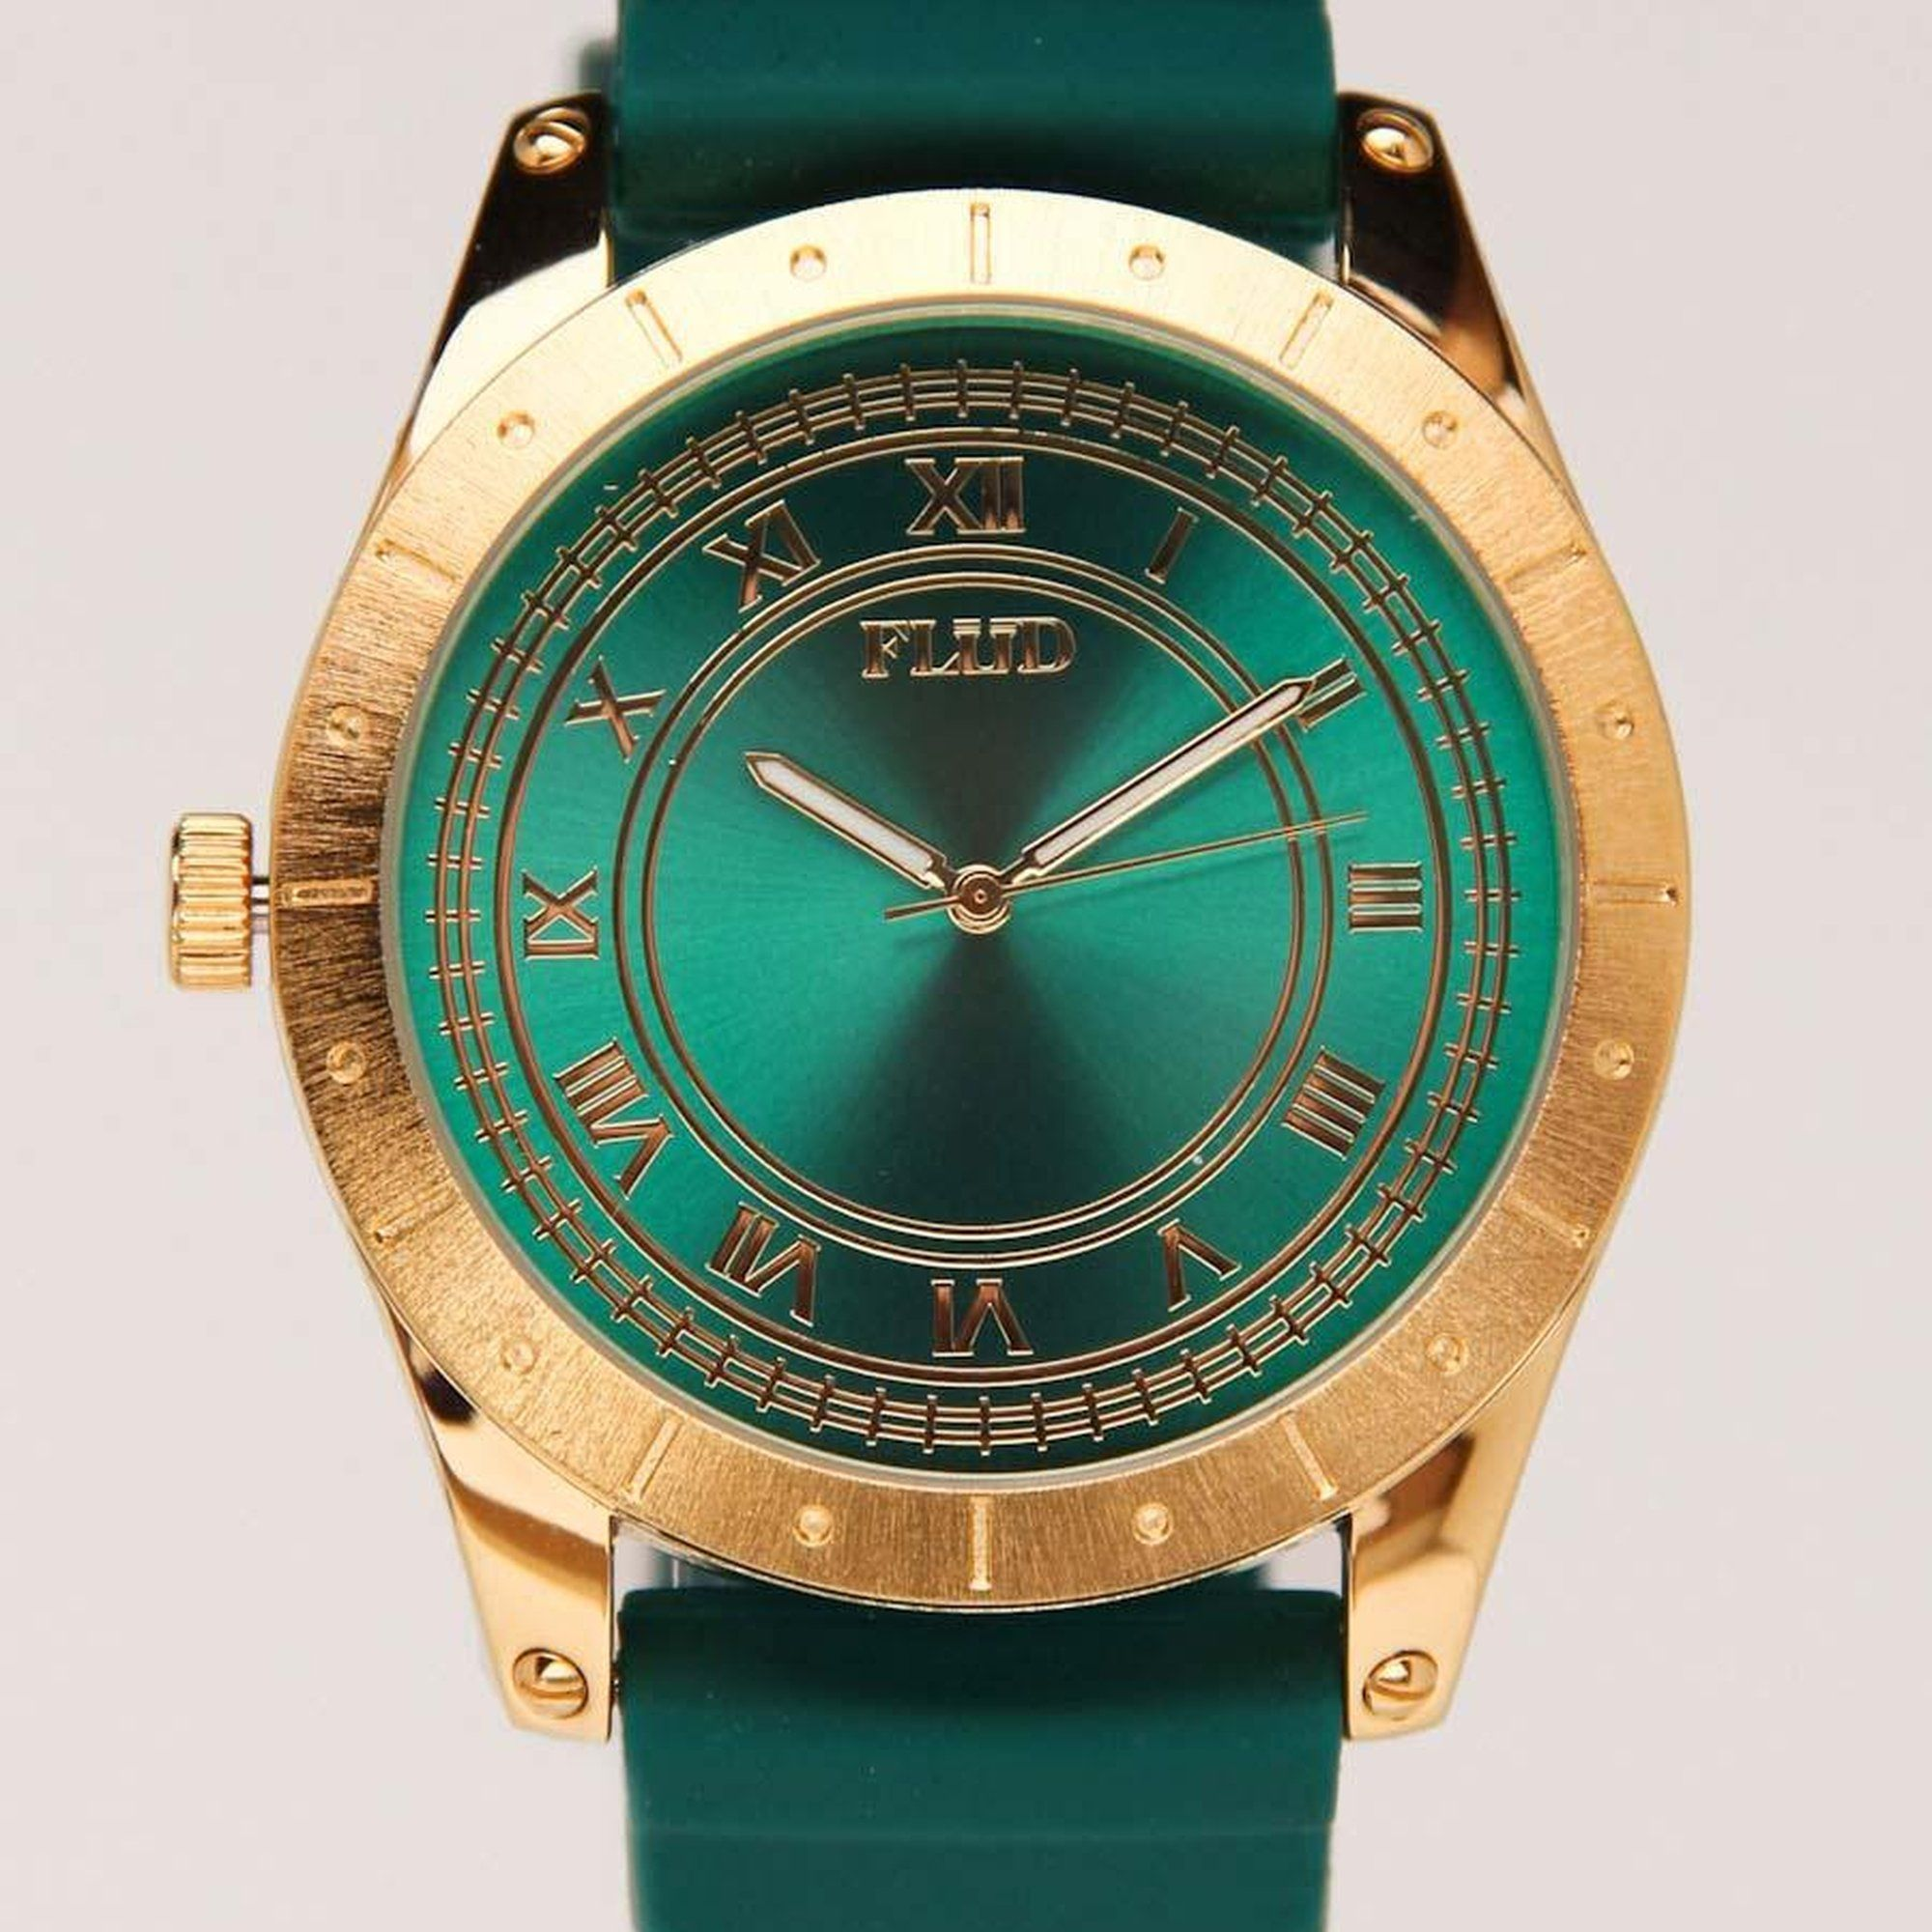 diamond watch watches emerald signed roberto gold capra cartier paris beads fullsizerender